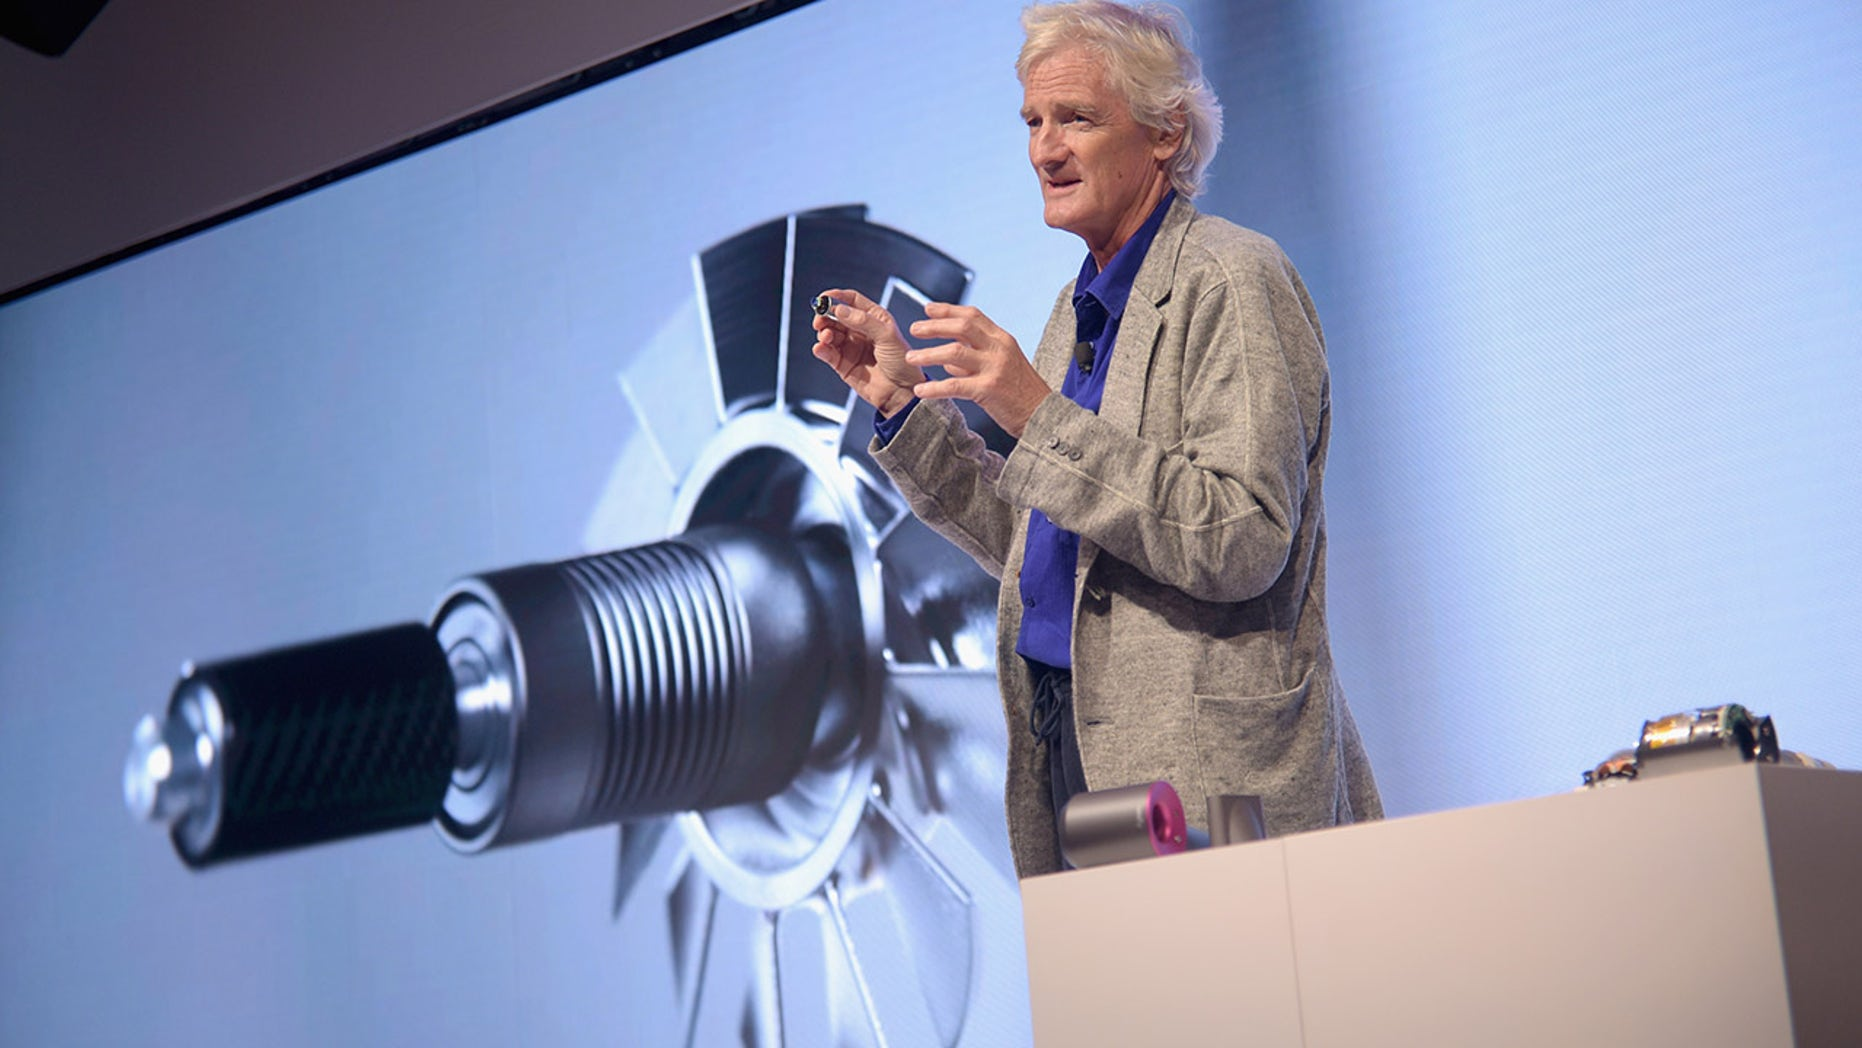 The UK loses out on building Dyson's electric vehicle